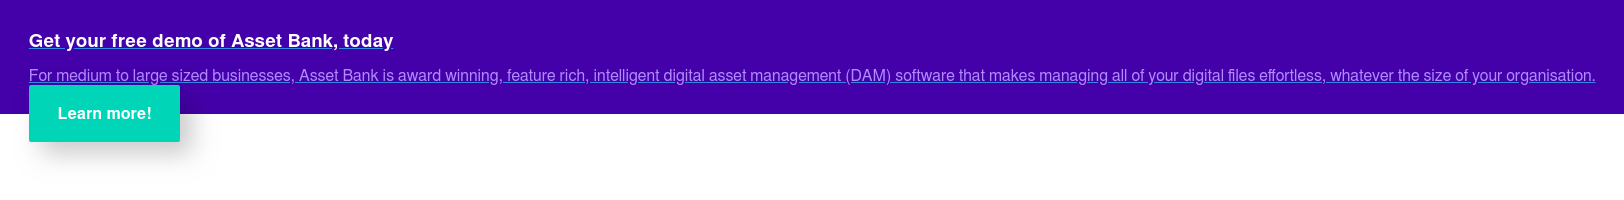 Get your free demo of Asset Bank, today  For medium to large sized businesses, Asset Bank is award winning, feature  rich, intelligent digital asset management (DAM) software that makes managing  all of your digital files effortless, whatever the size of your organisation. Learn more!